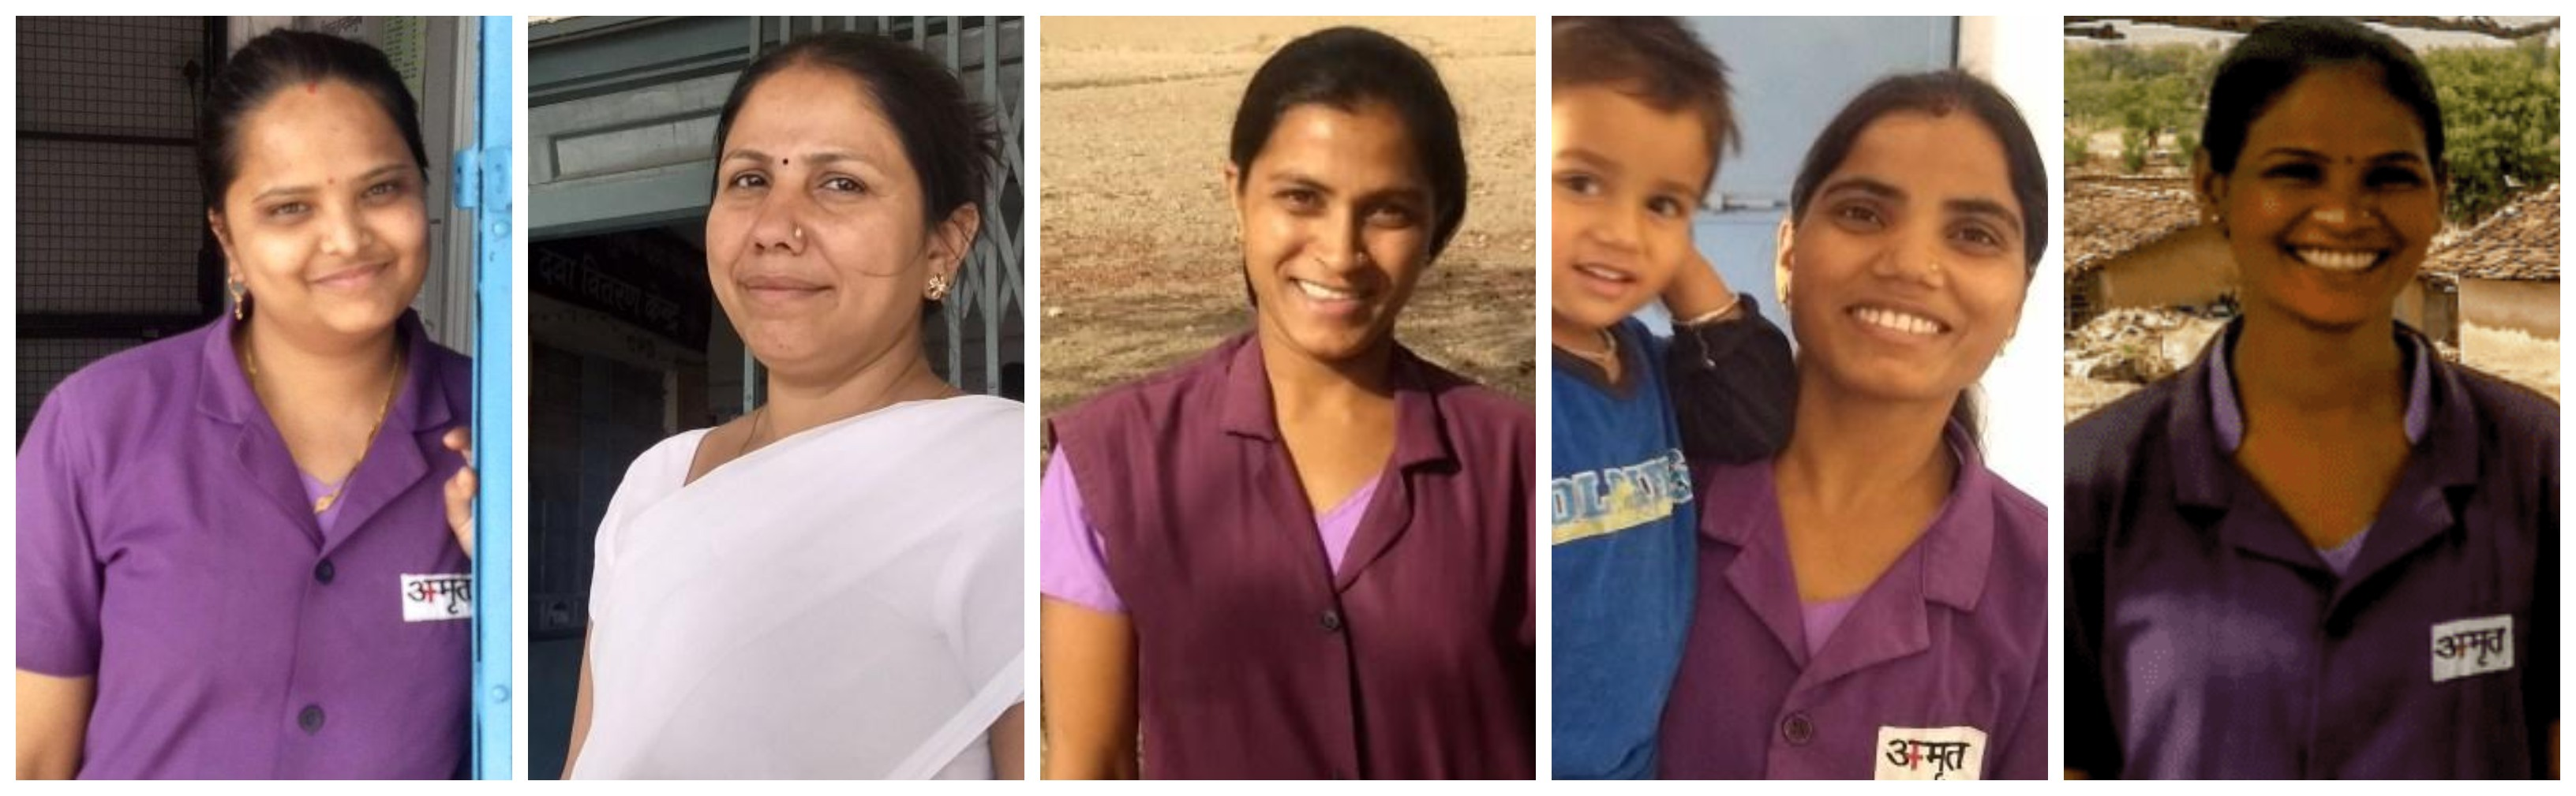 How These 5 Women Nurses From Rural Communities Are Challenging The Status Quo